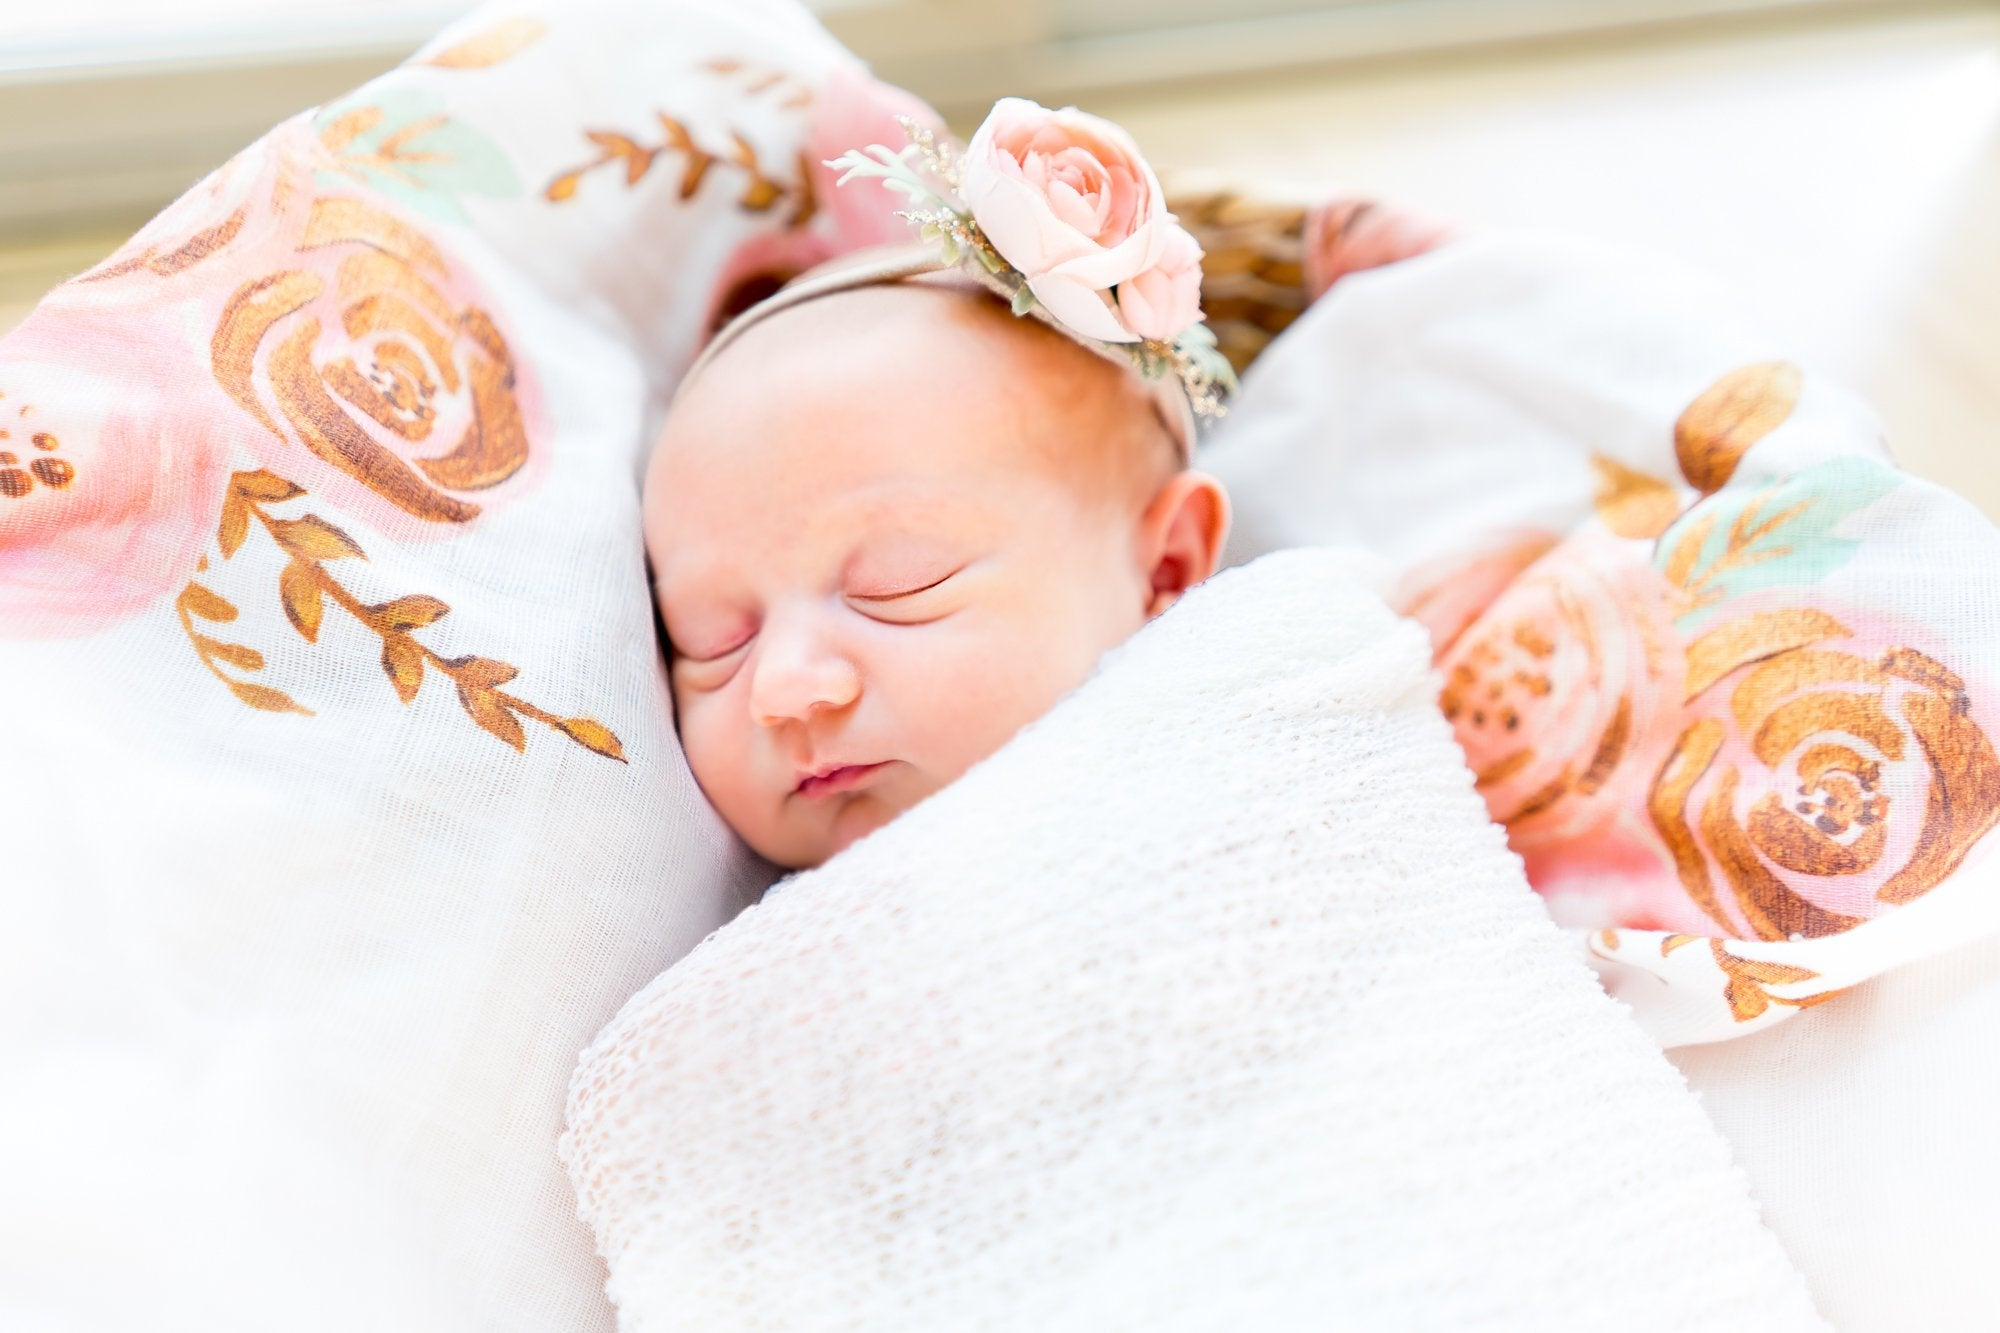 Gold Floral Swaddle Blanket - Pink Flower Baby Blanket - Dream Evergreen @DreamEvergreen